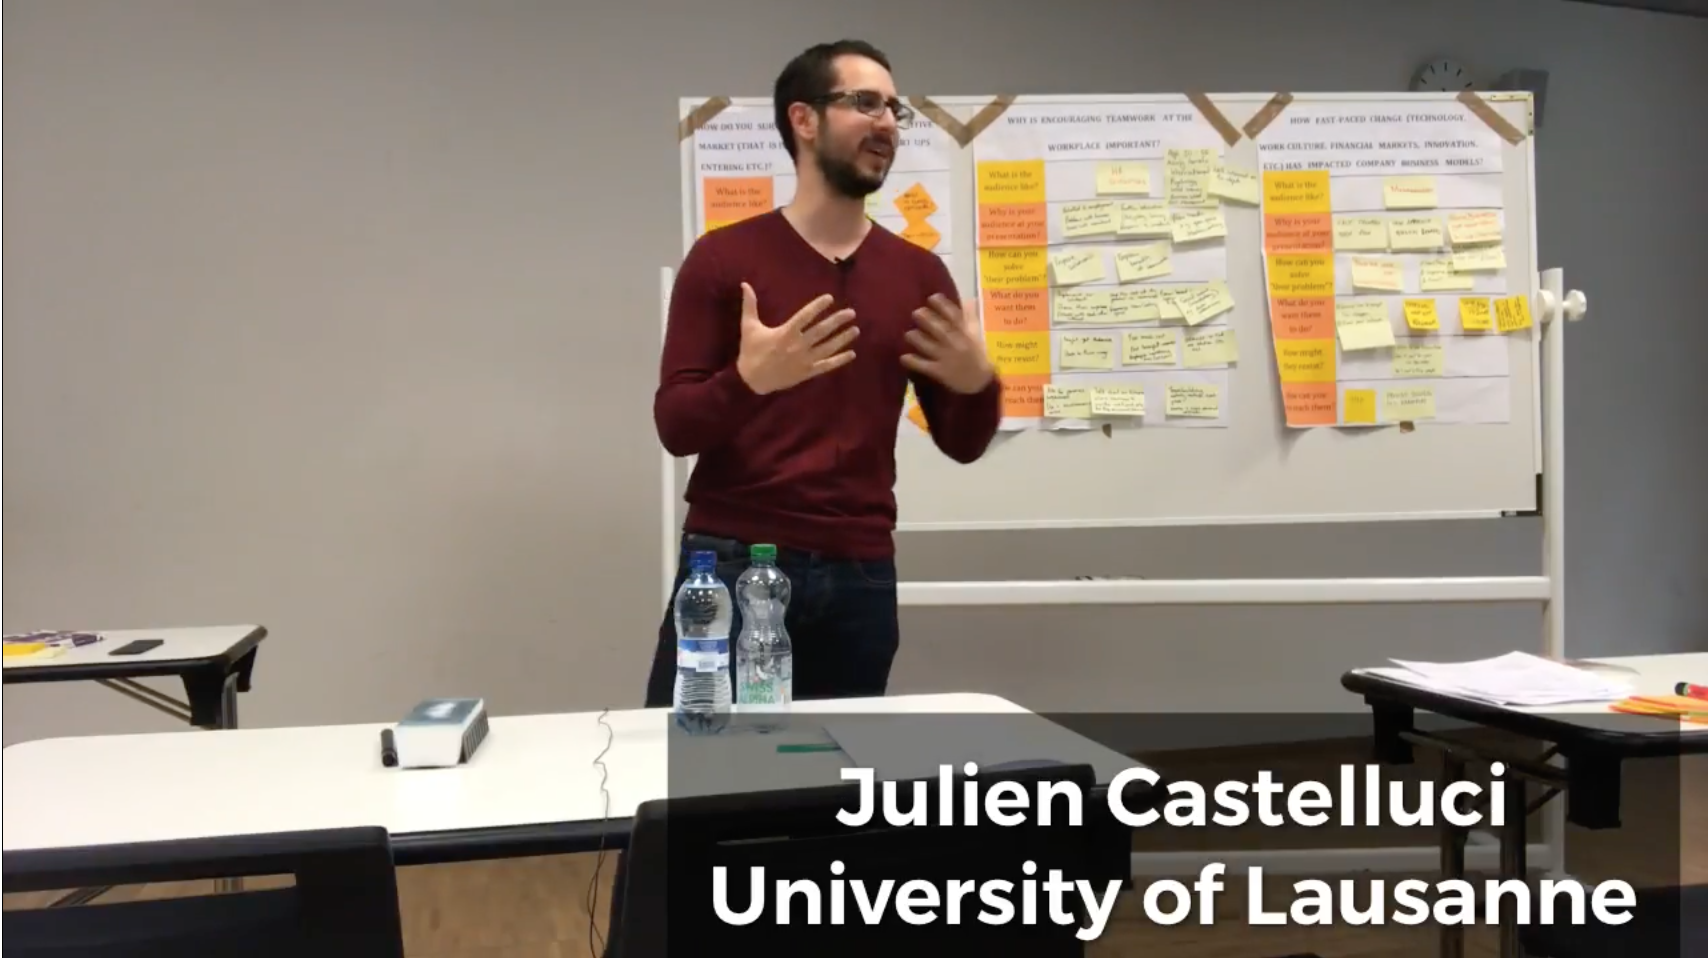 Michael Virardi - University of Lausanne | MASIT program | Julien Castelluci